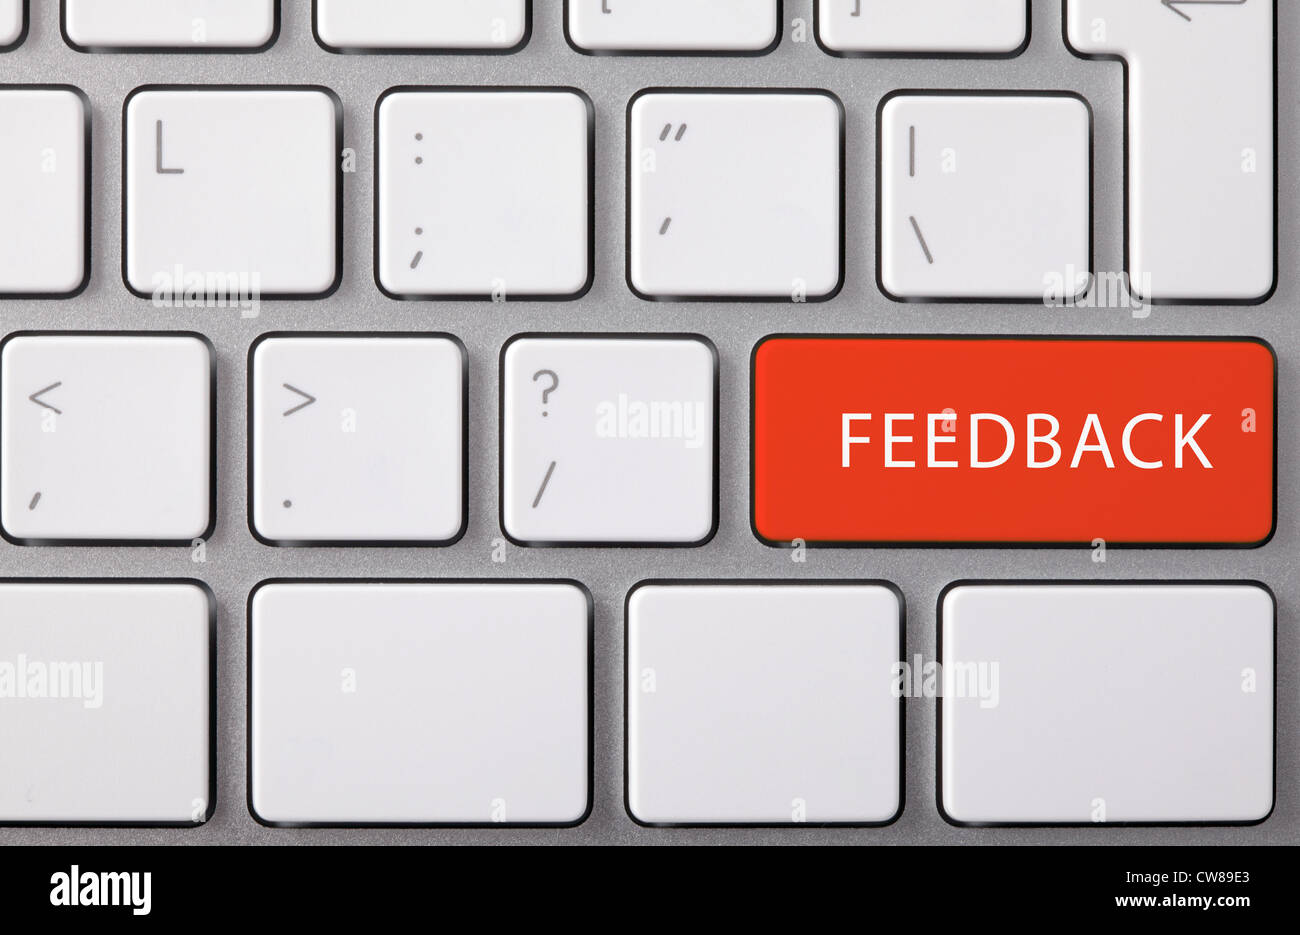 Laptop keyboard and red key 'FEEDBACK' on it. - Stock Image